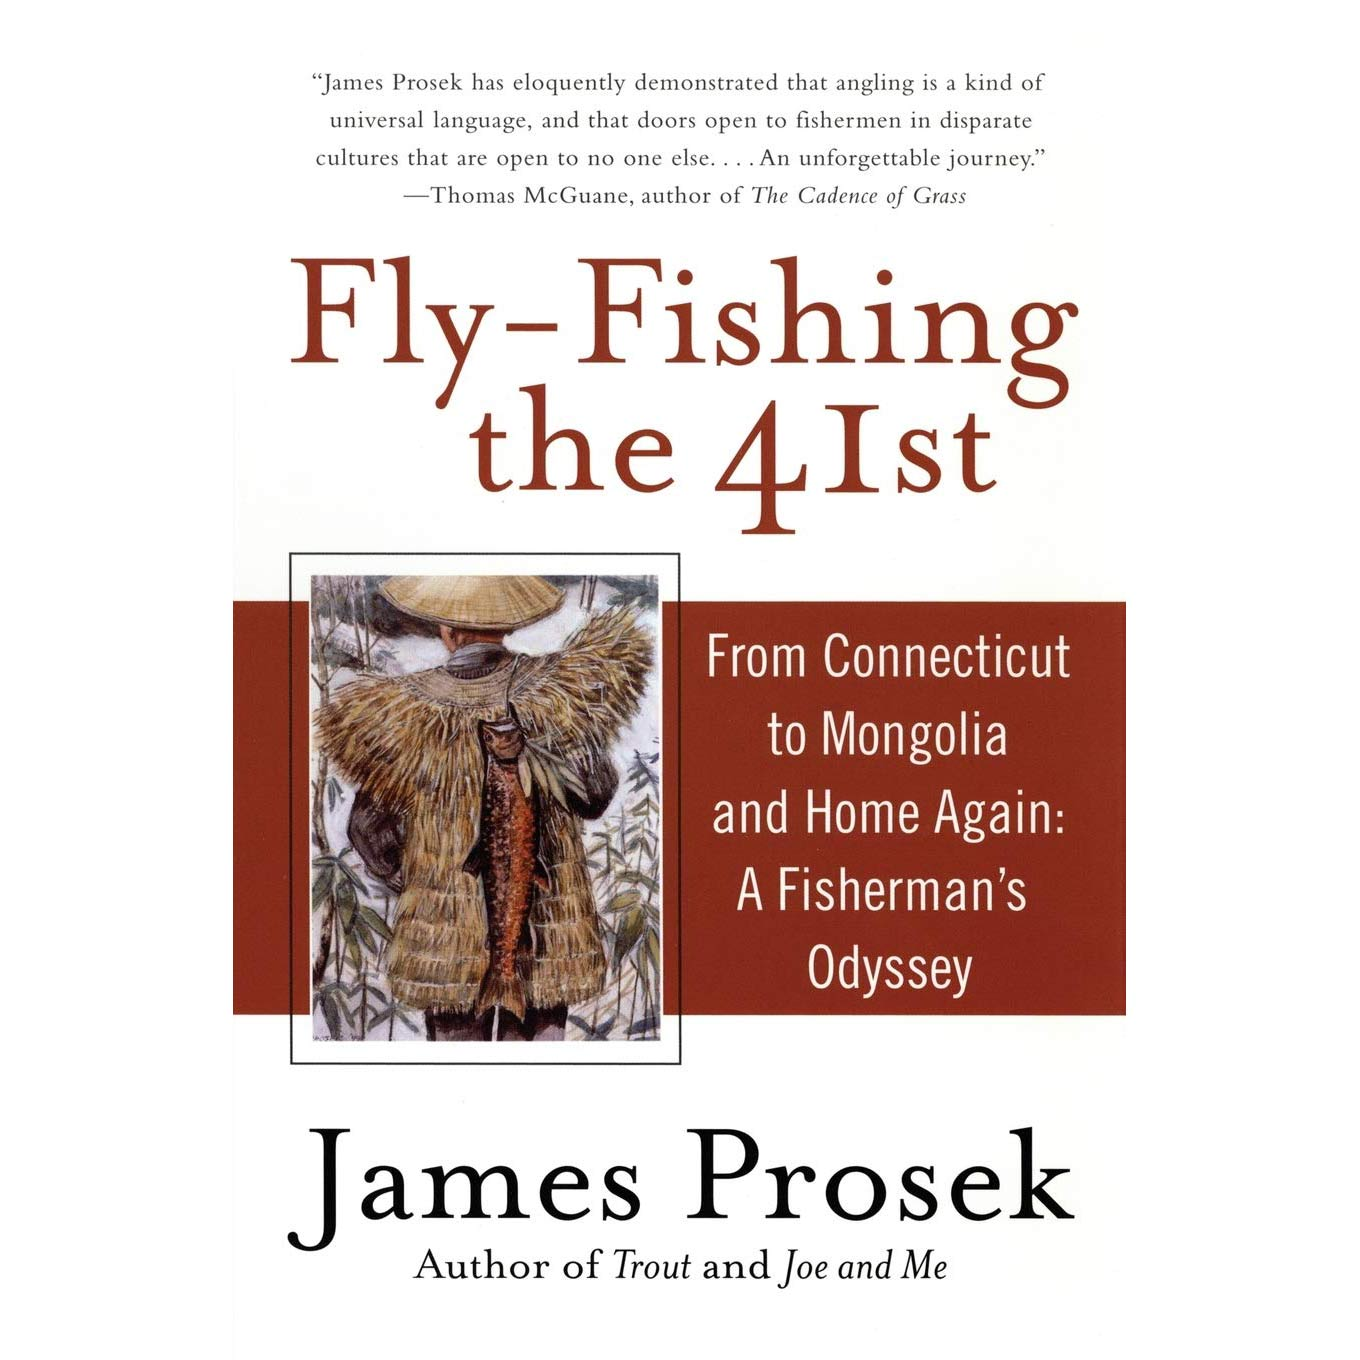 """<i>Fly Fishing the 41st</i> by James Prosek"""" class=""""wp-image-91837″/>           </figure>                   </a>             </div>   <div class="""